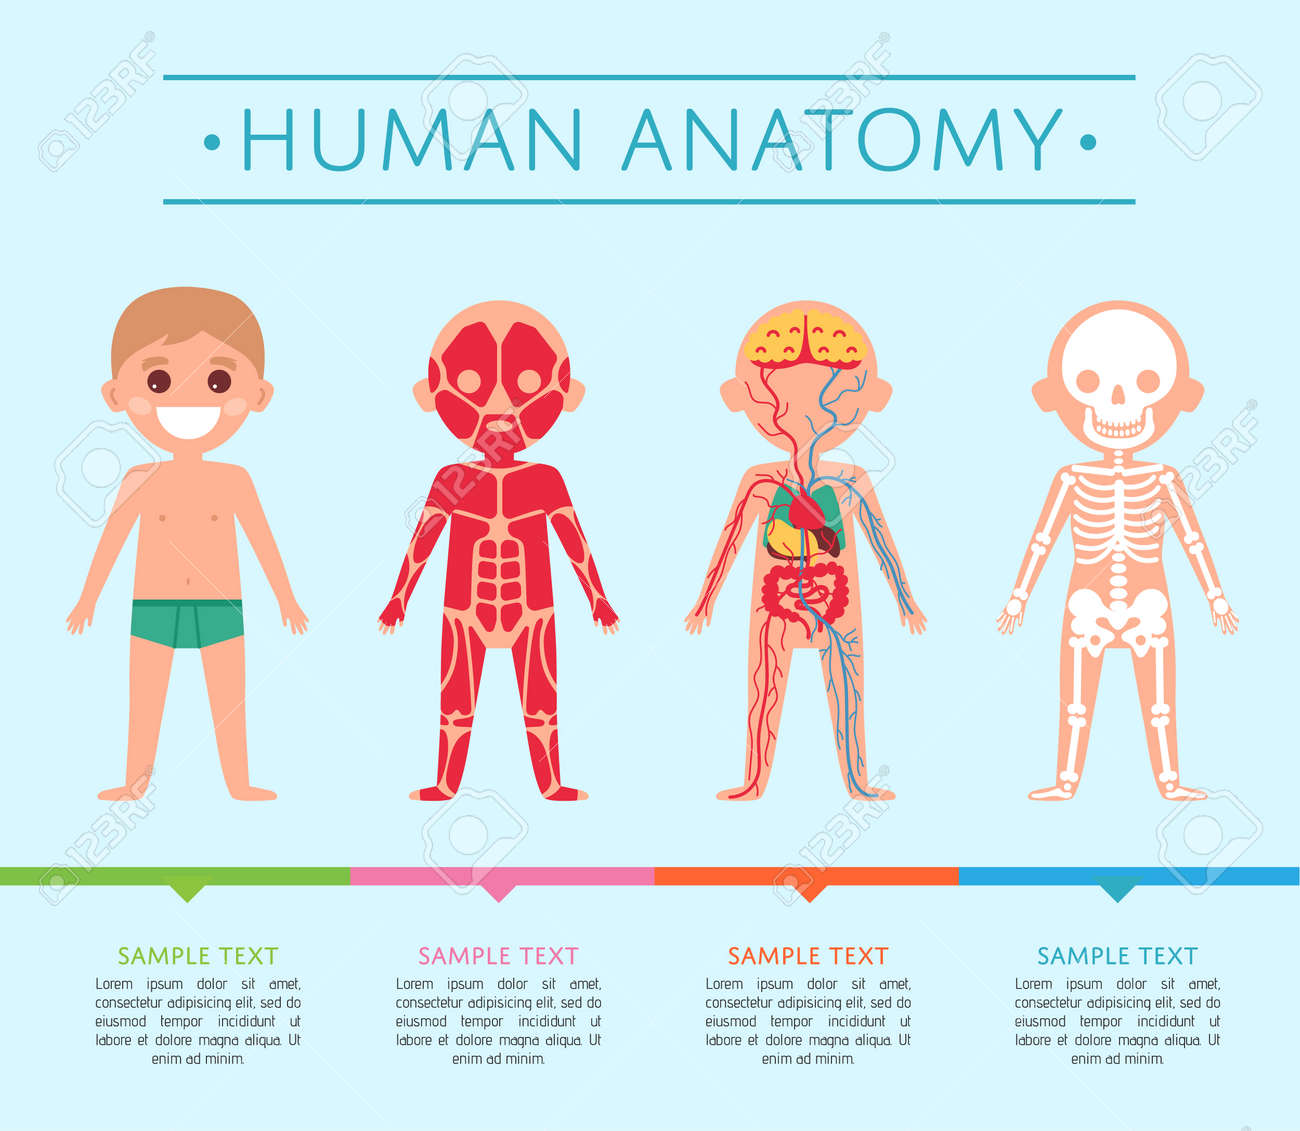 Human Anatomy Medical Poster With Child Male Skeleton Muscular